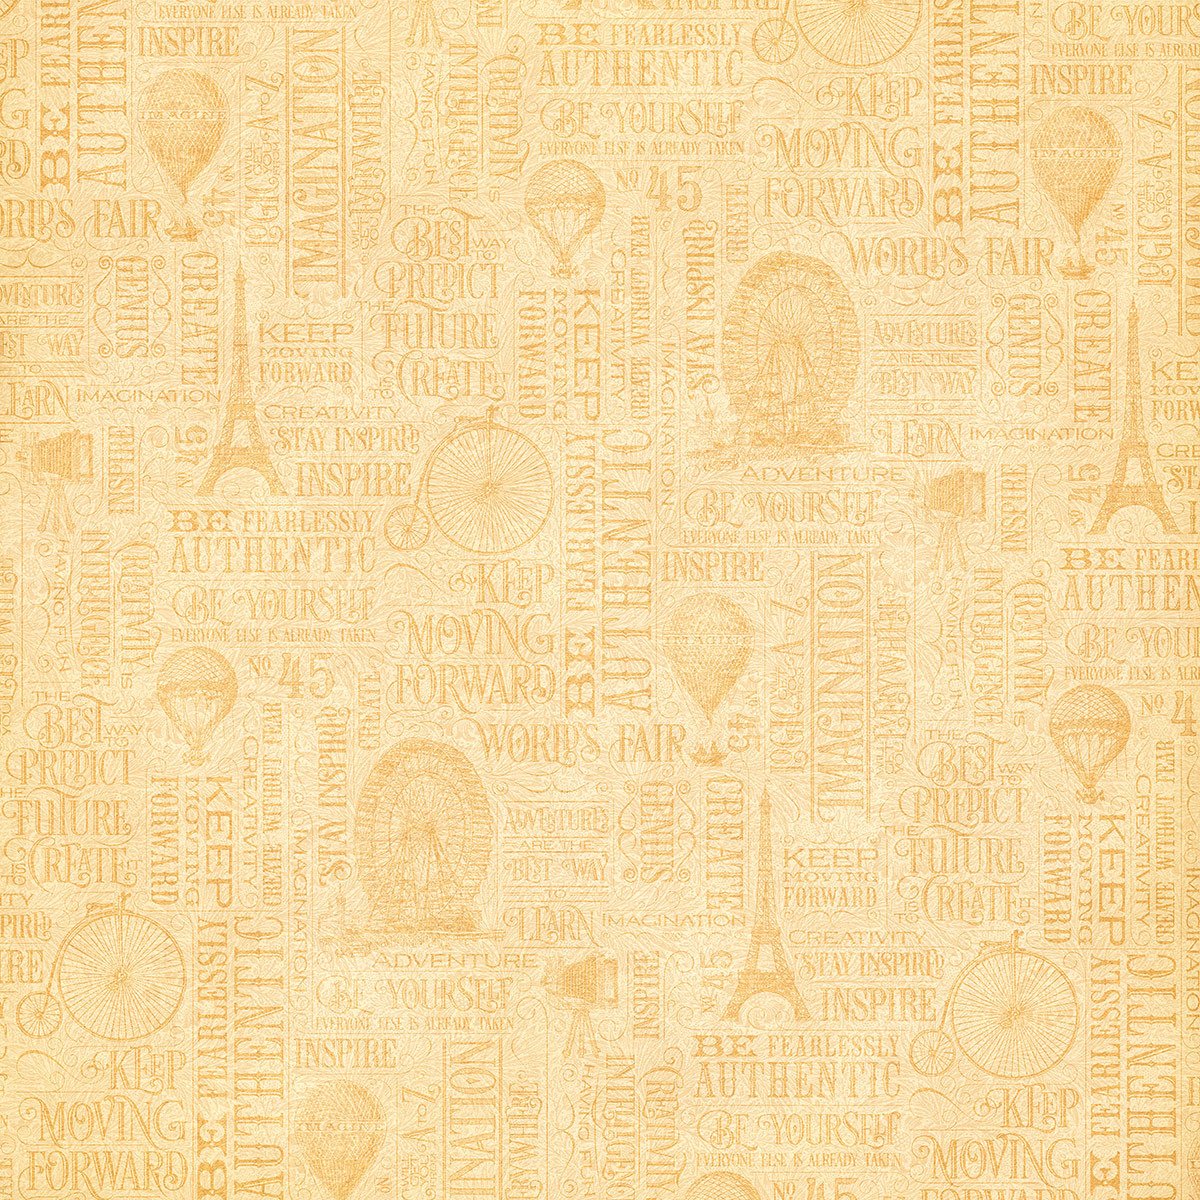 Graphic-Worlds-Fair-Inspiration-Station-x-double-side-sheet-of-scrapbook-paper-wallpaper-wp4606414